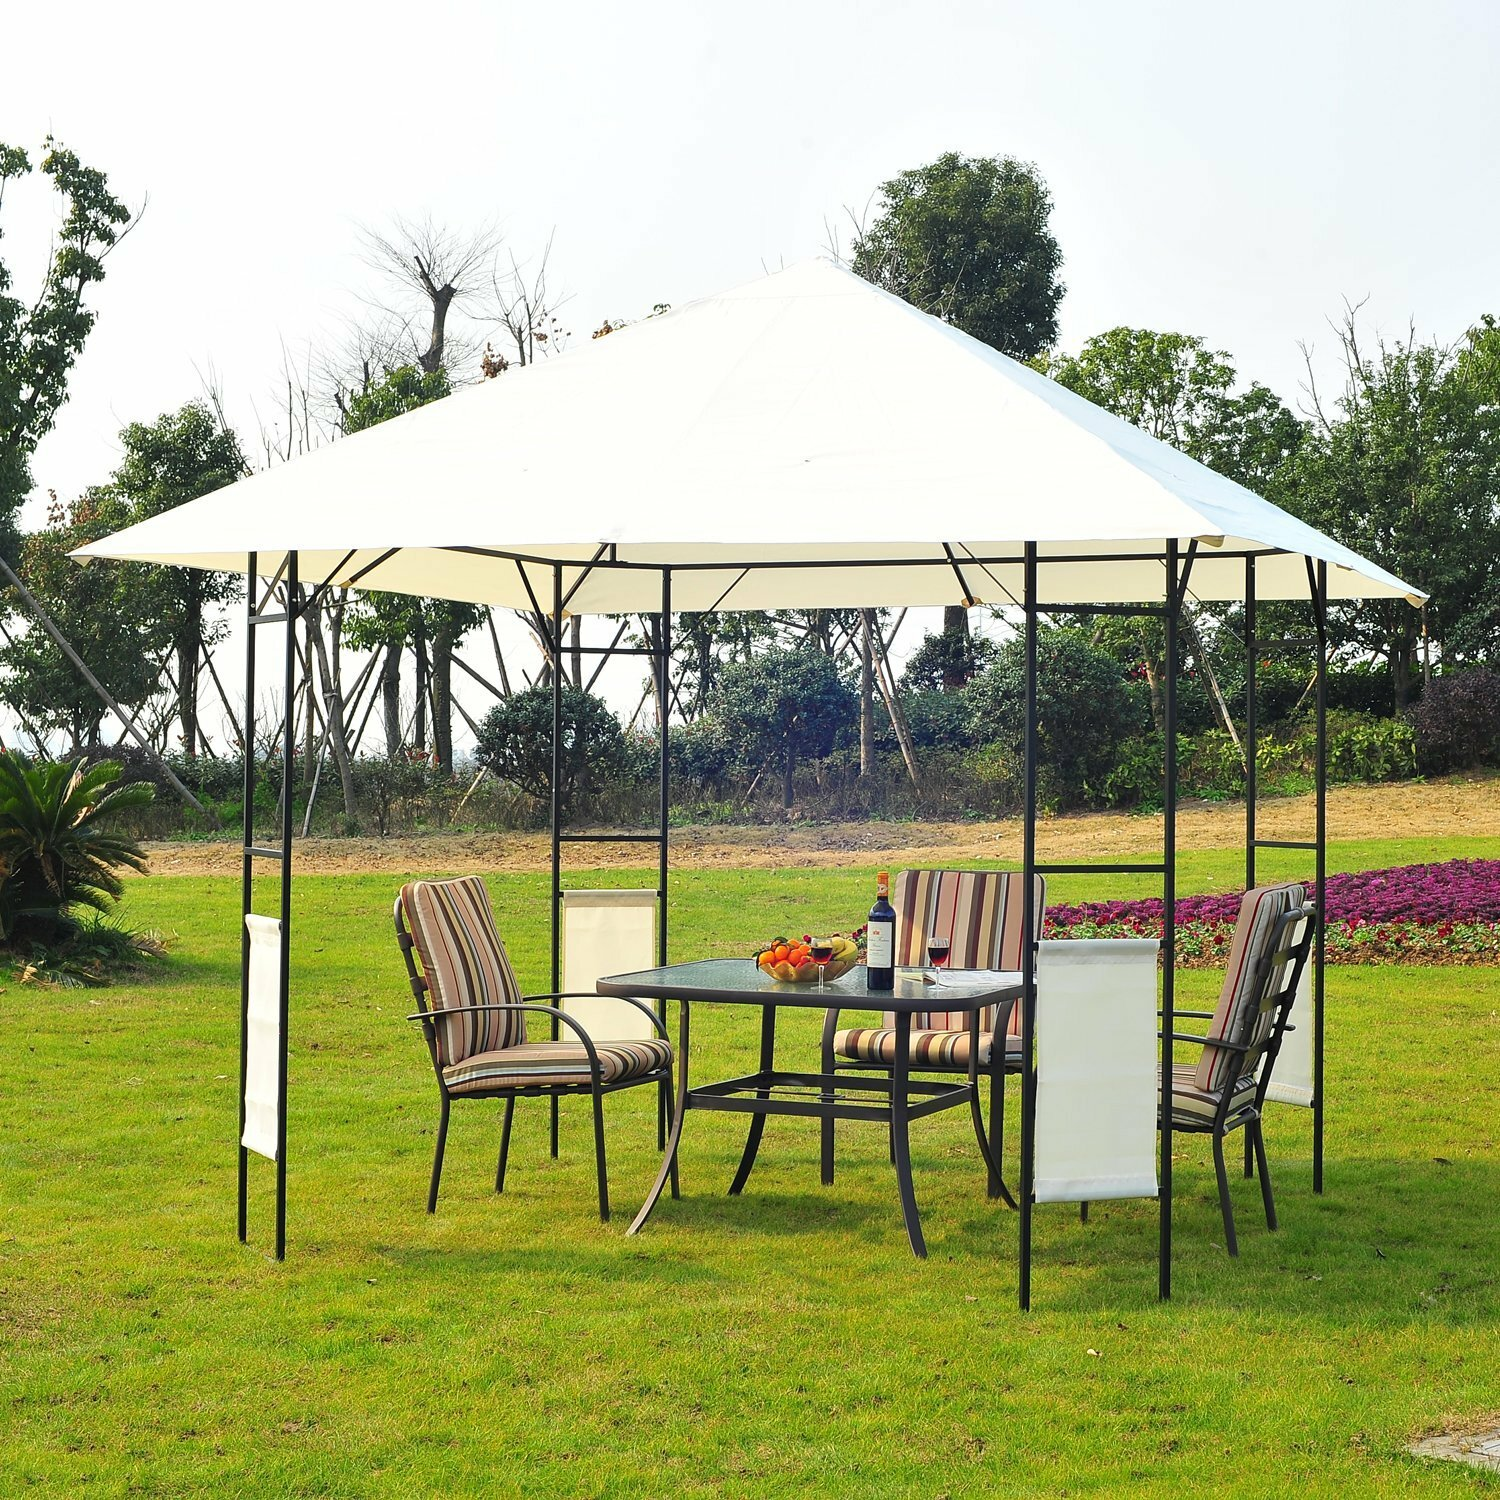 Steel Portable Gazebo : Outsunny ft w d metal portable gazebo